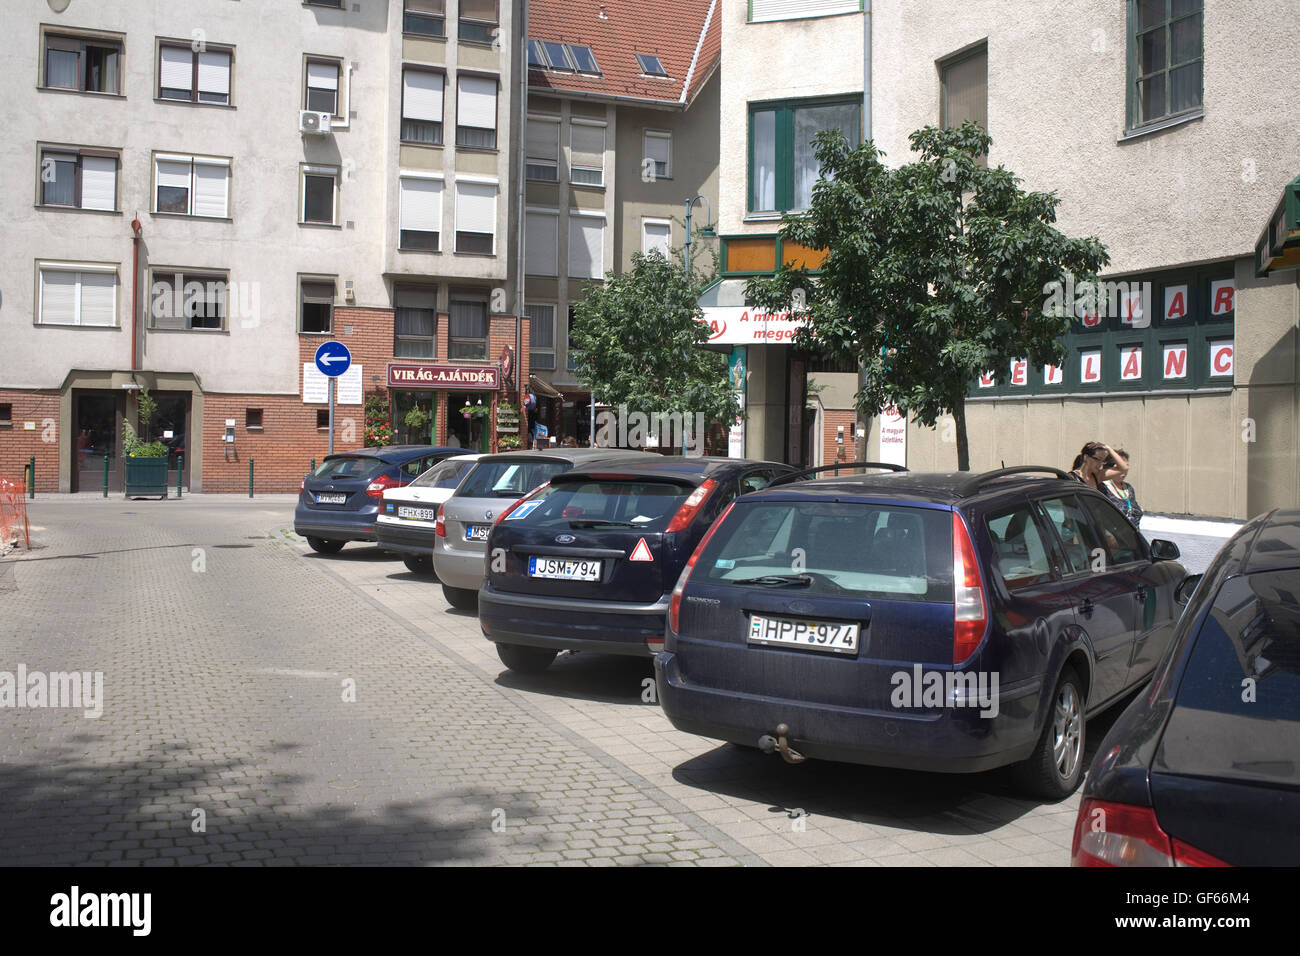 parked cars on a quiet street in district IX - Stock Image